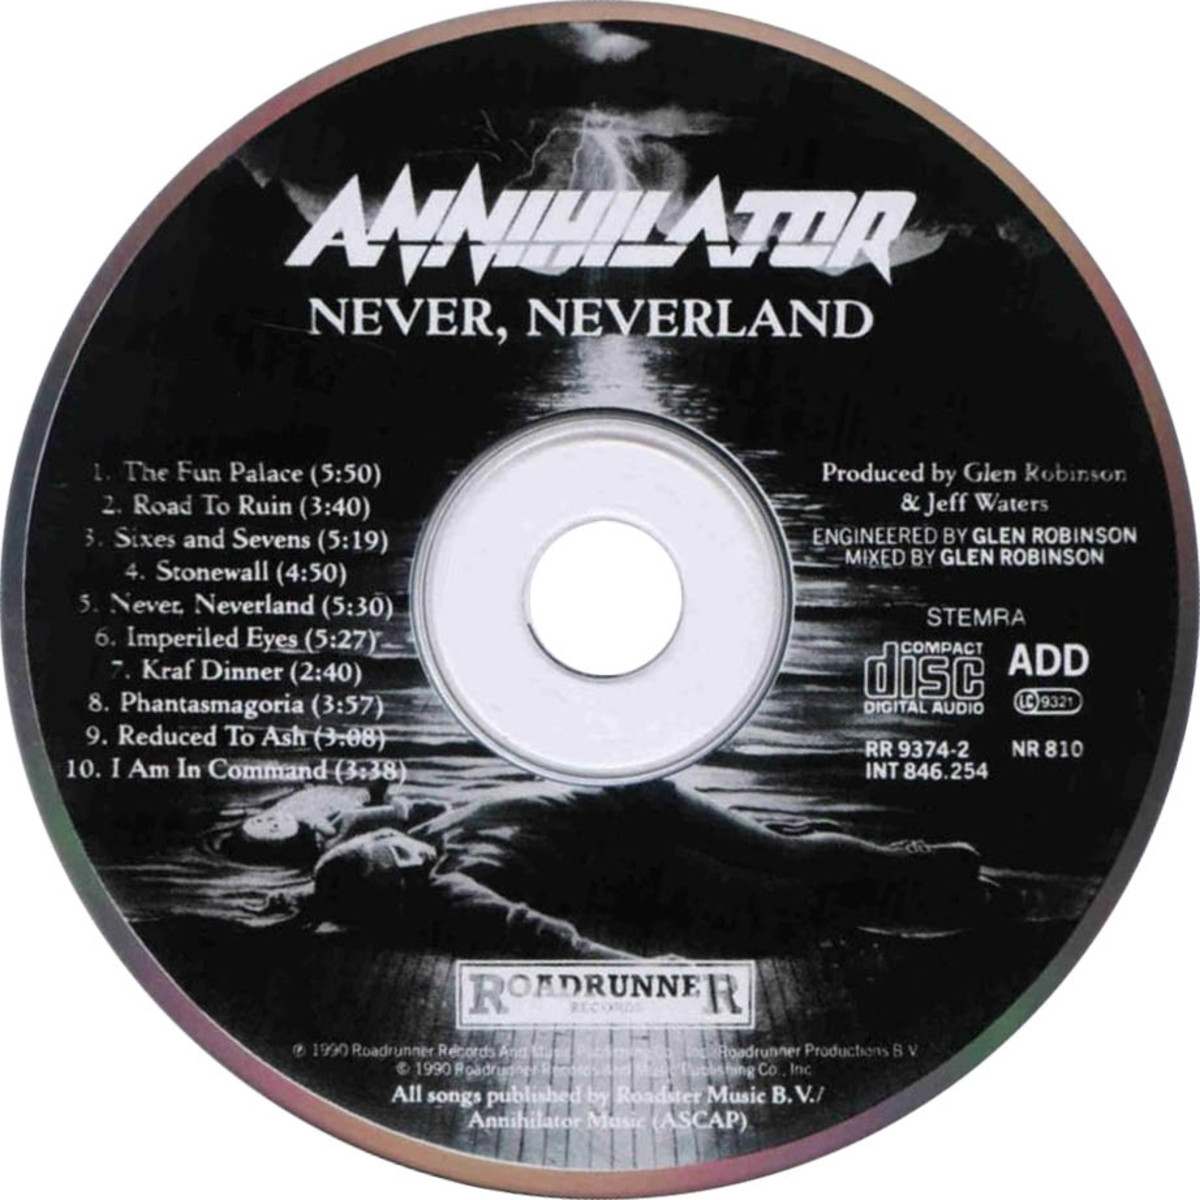 A Review of the 1990 thrash metal album Never Neverland by Annihilator